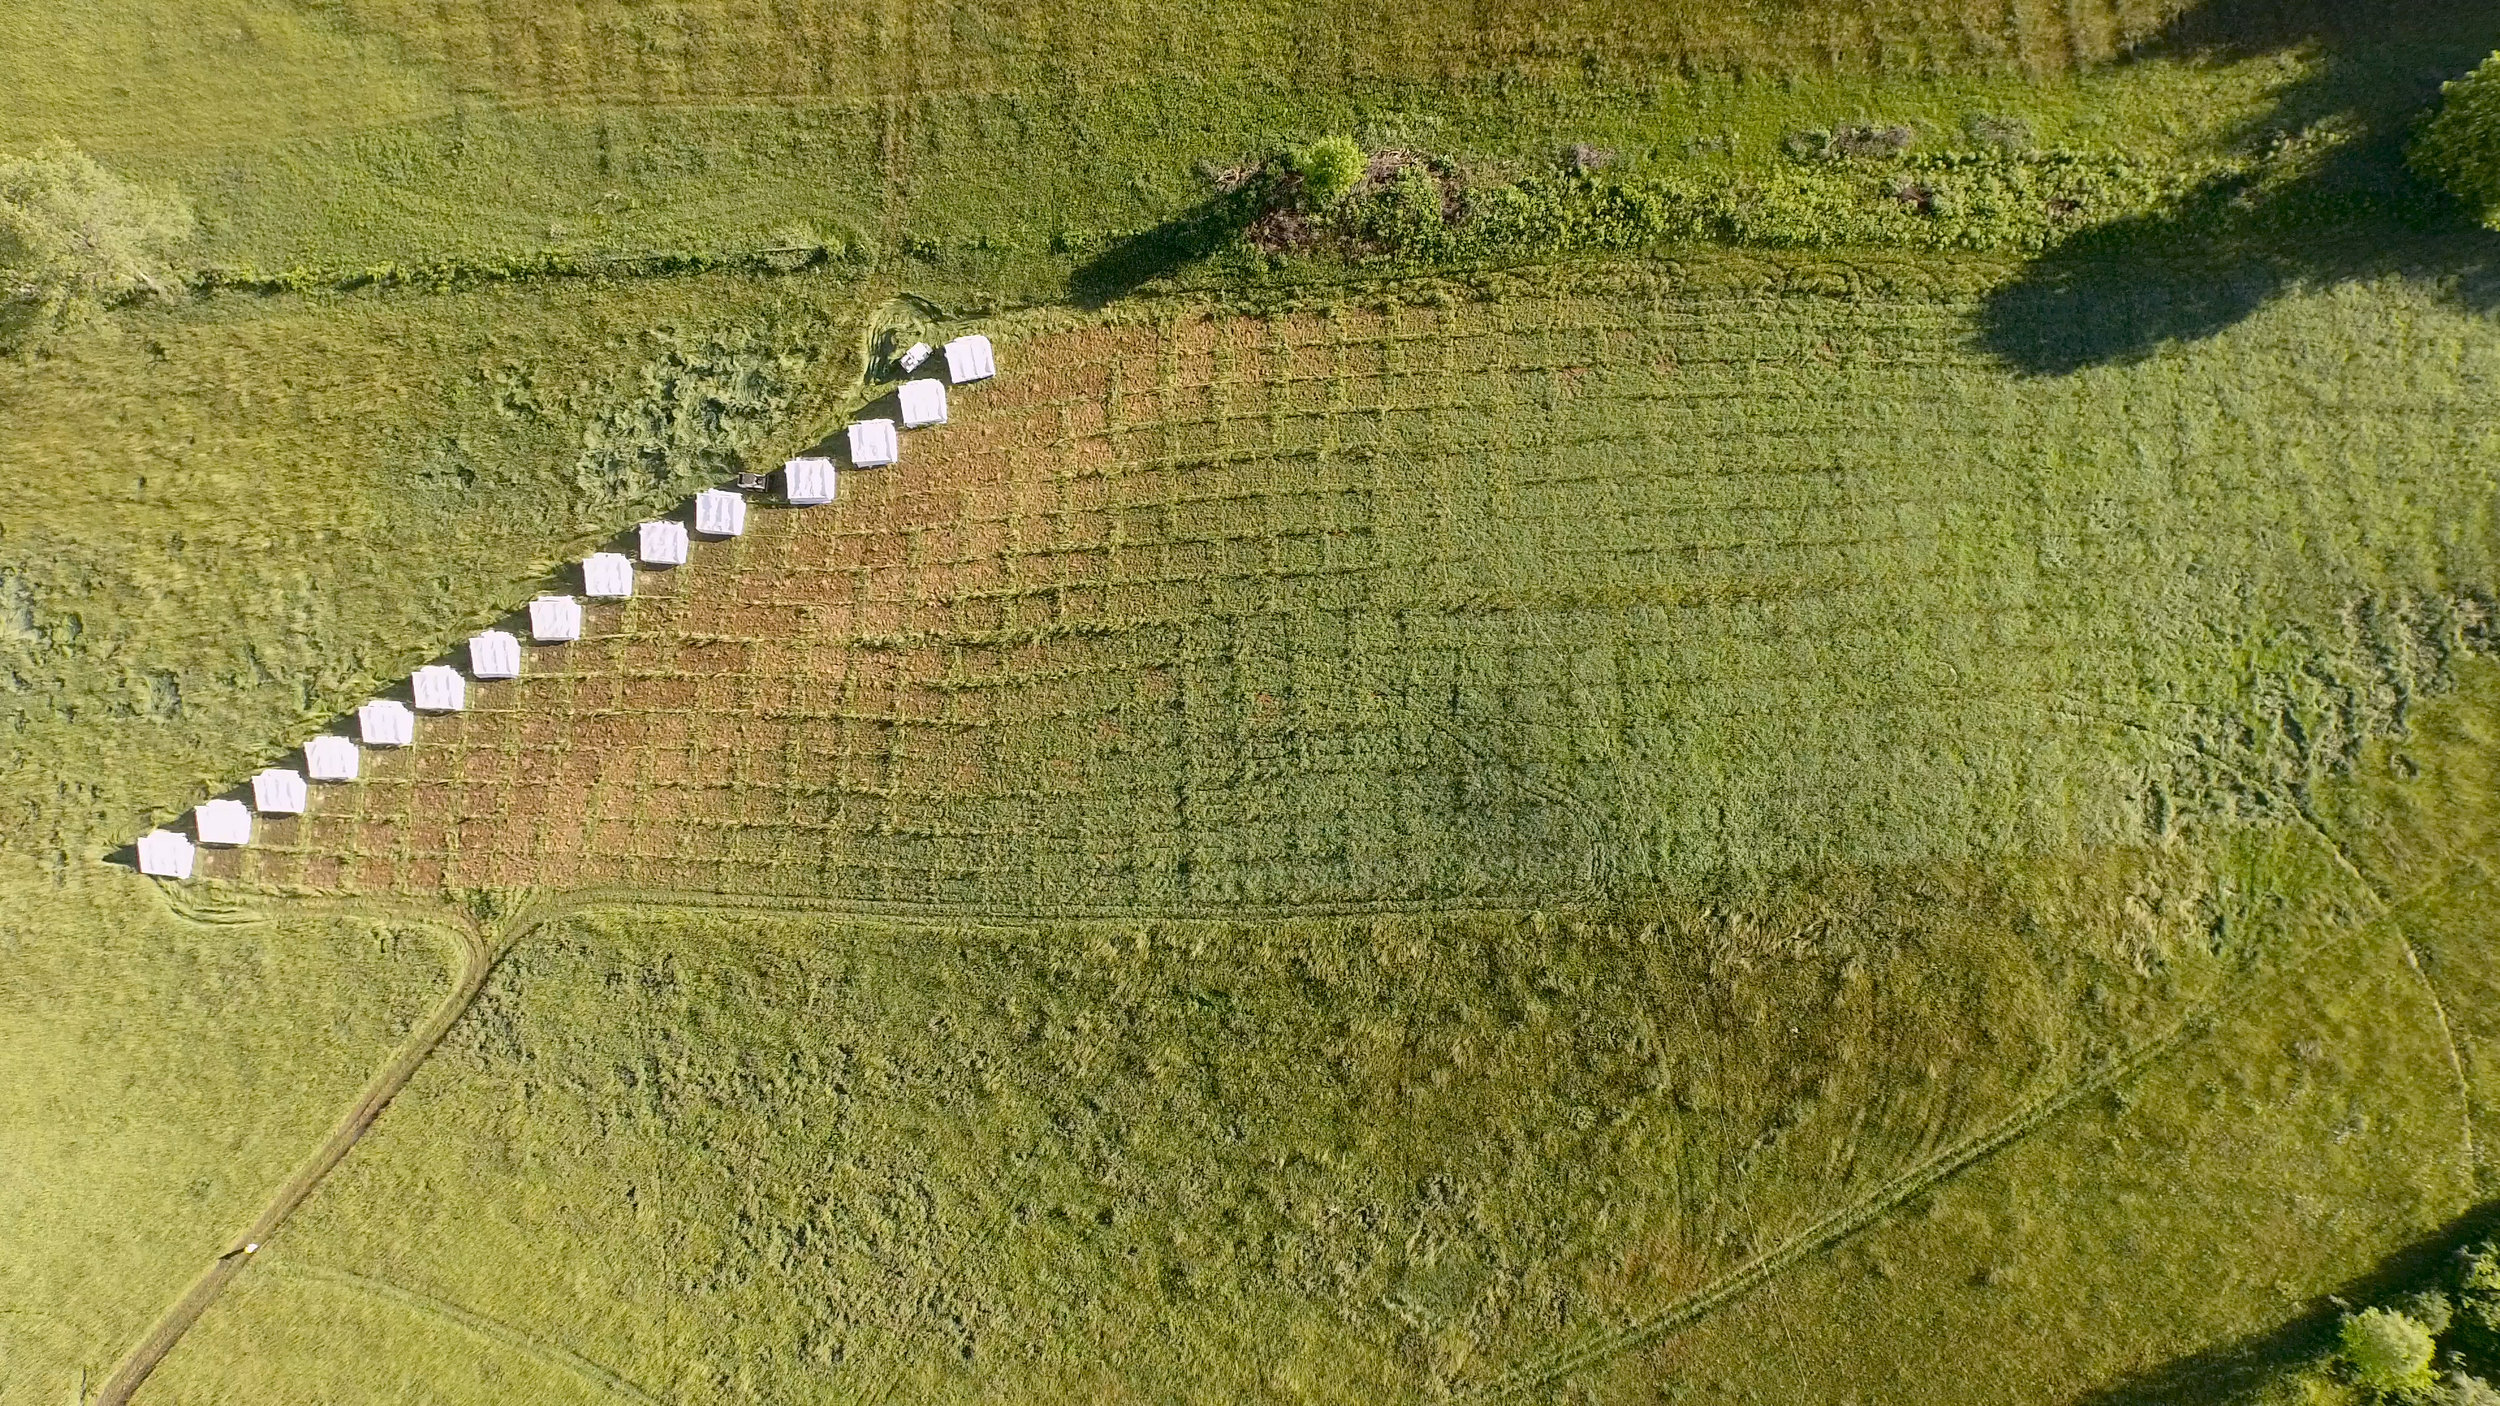 An aerial view of the pasture shelters reveals part of the inspiration for the name of our brand  Pasture Patterns.   Pasturing also creates a pattern of life that must blend and adjust to the changes between and within each season.